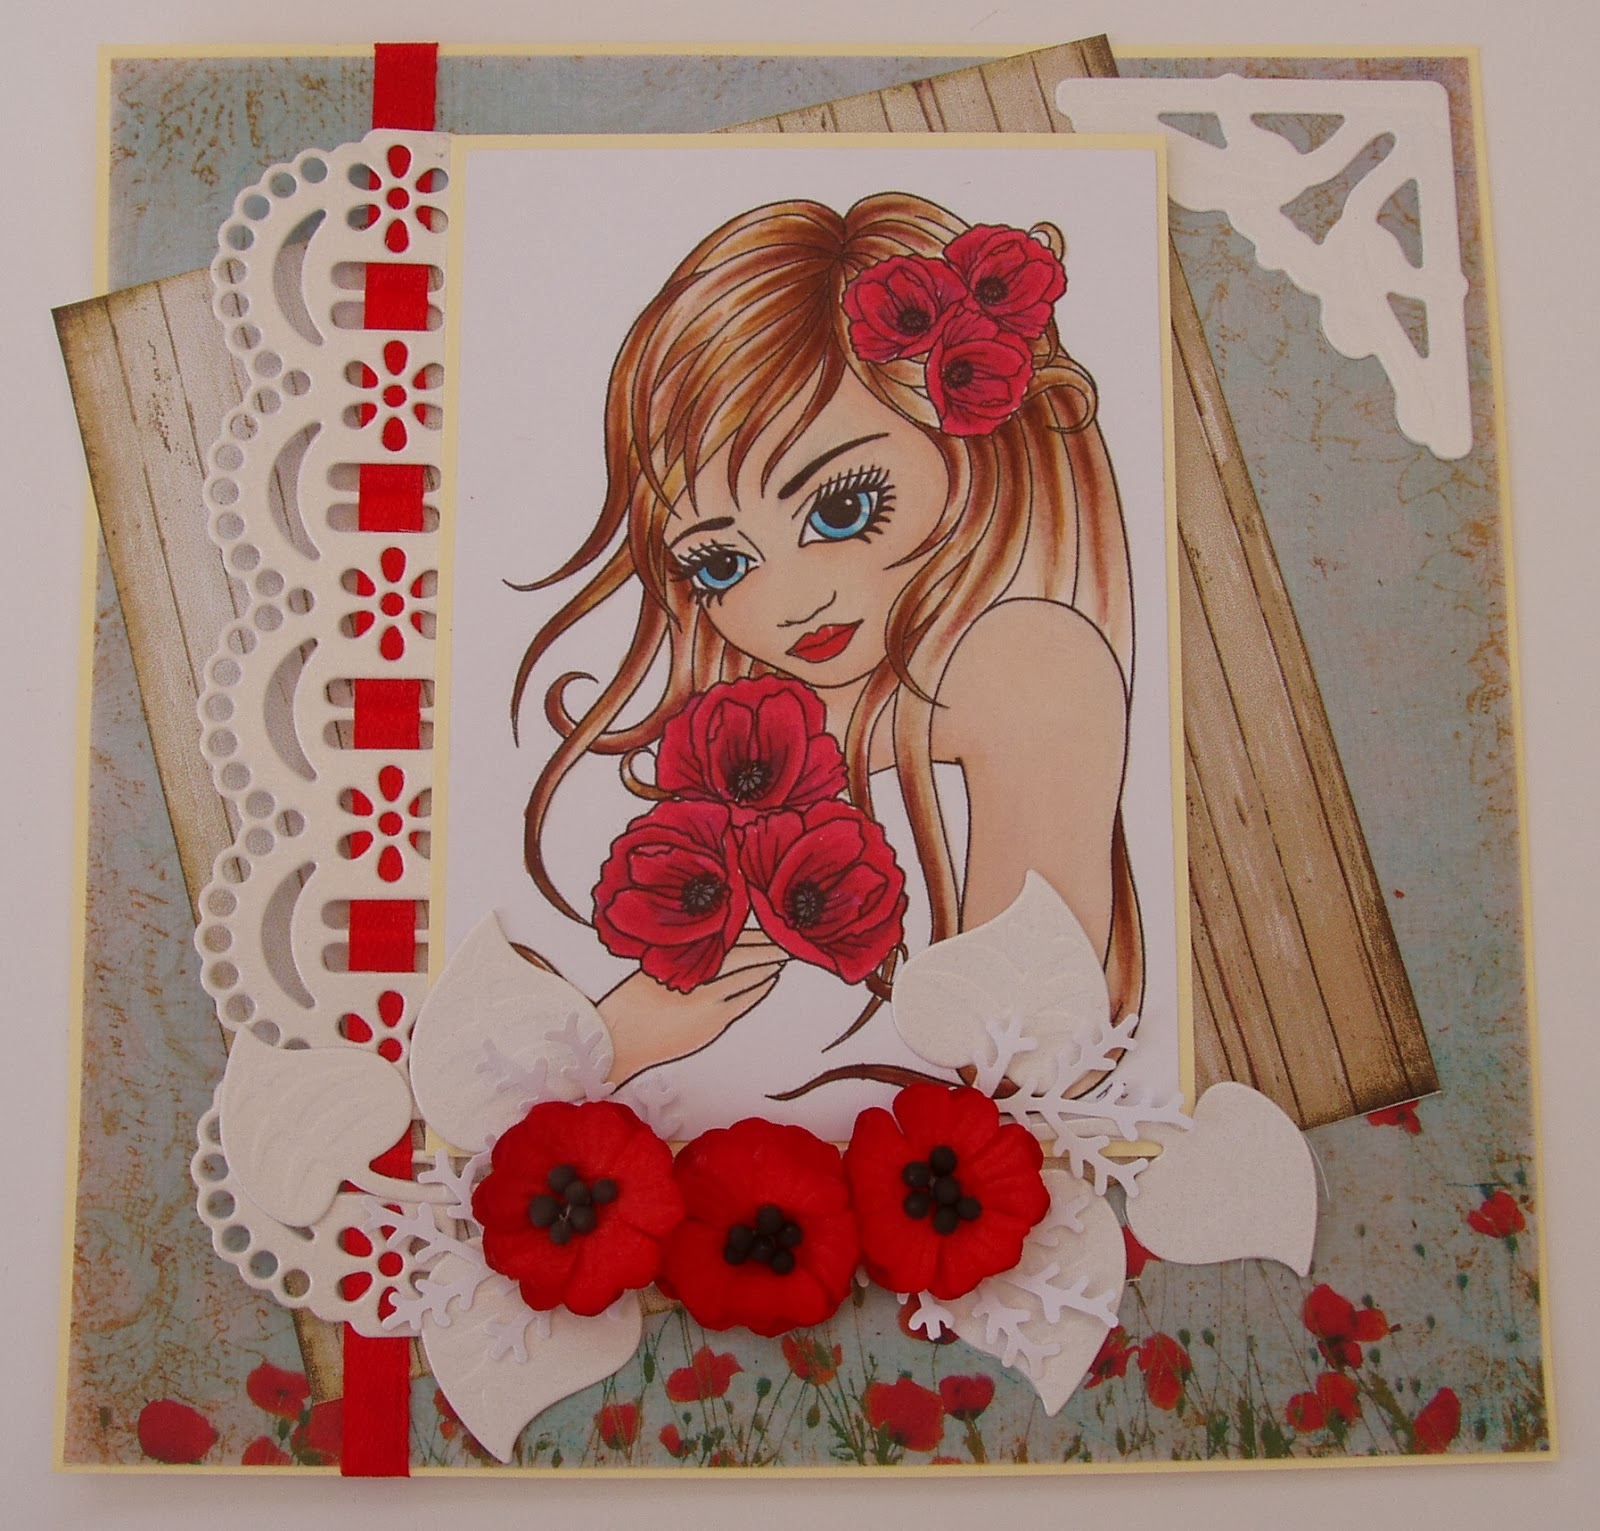 http://flossbites-cardmaking.blogspot.com/2013/11/poppies-poppies-everywhere.html